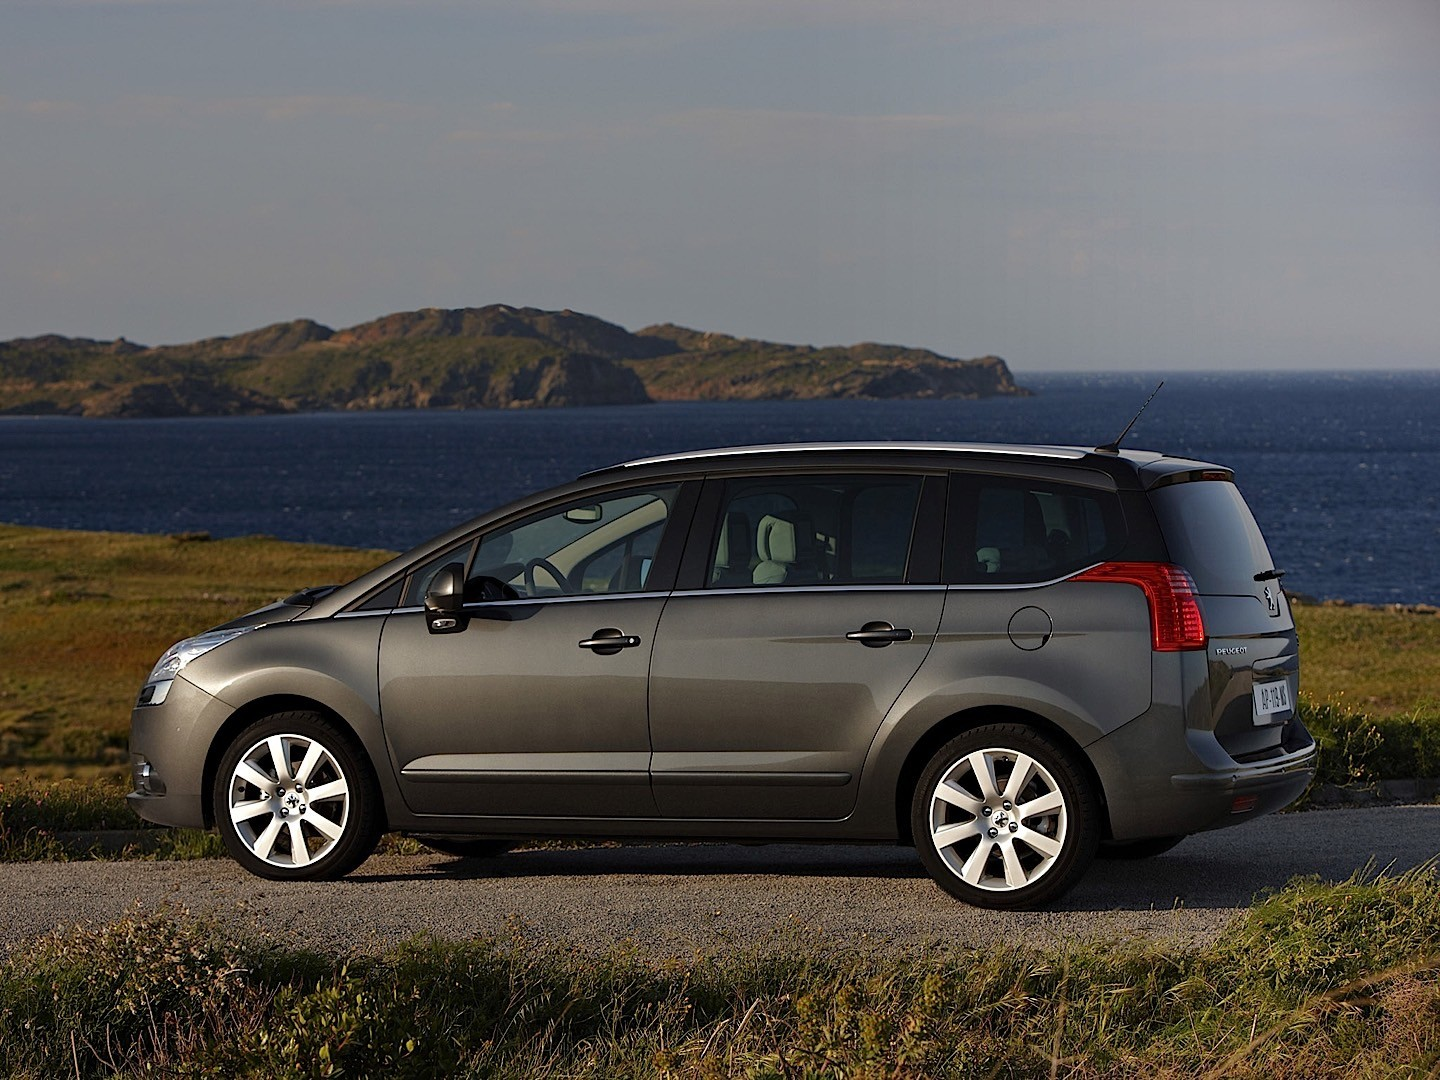 Cars With 3 Rows Of Seats >> PEUGEOT 5008 specs - 2009, 2010, 2011, 2012, 2013 ...